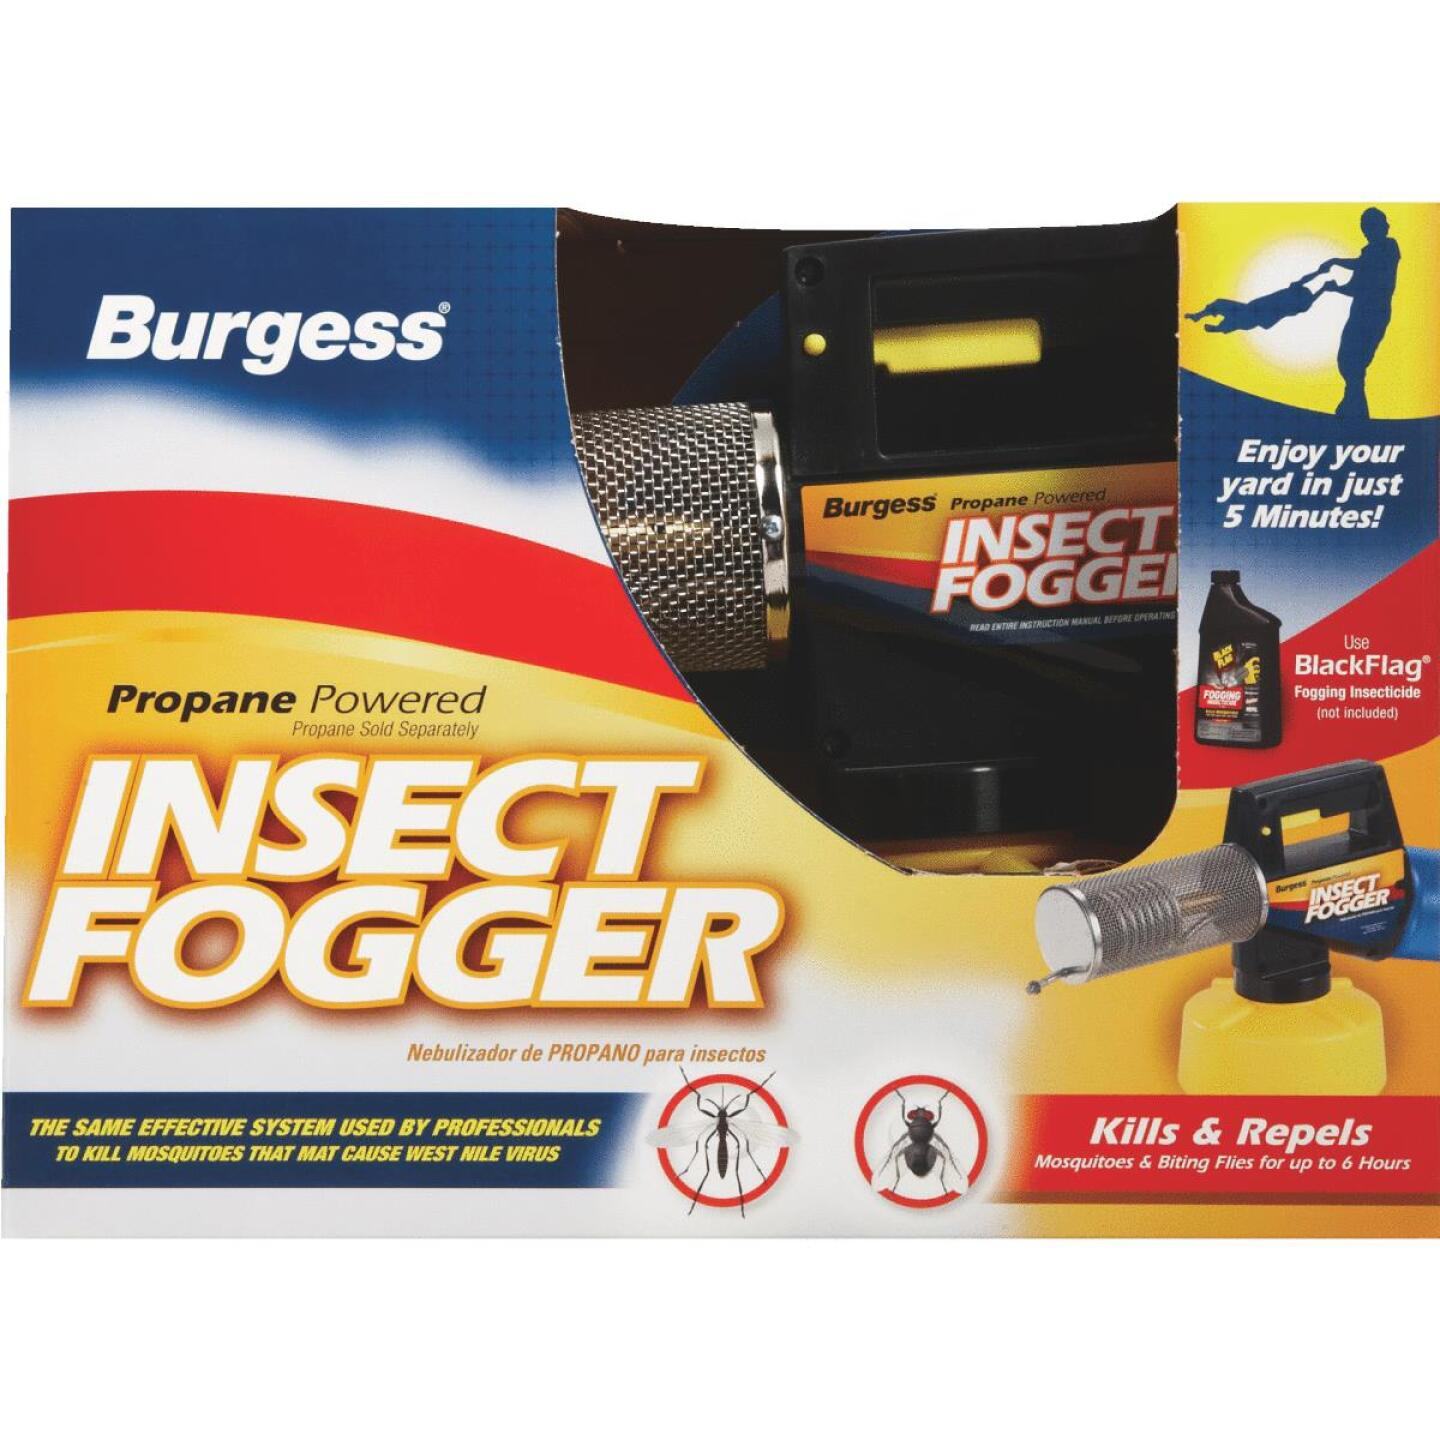 Burgess 45 Oz. 10 Ft. Cone Insect Propane Fogger Image 2